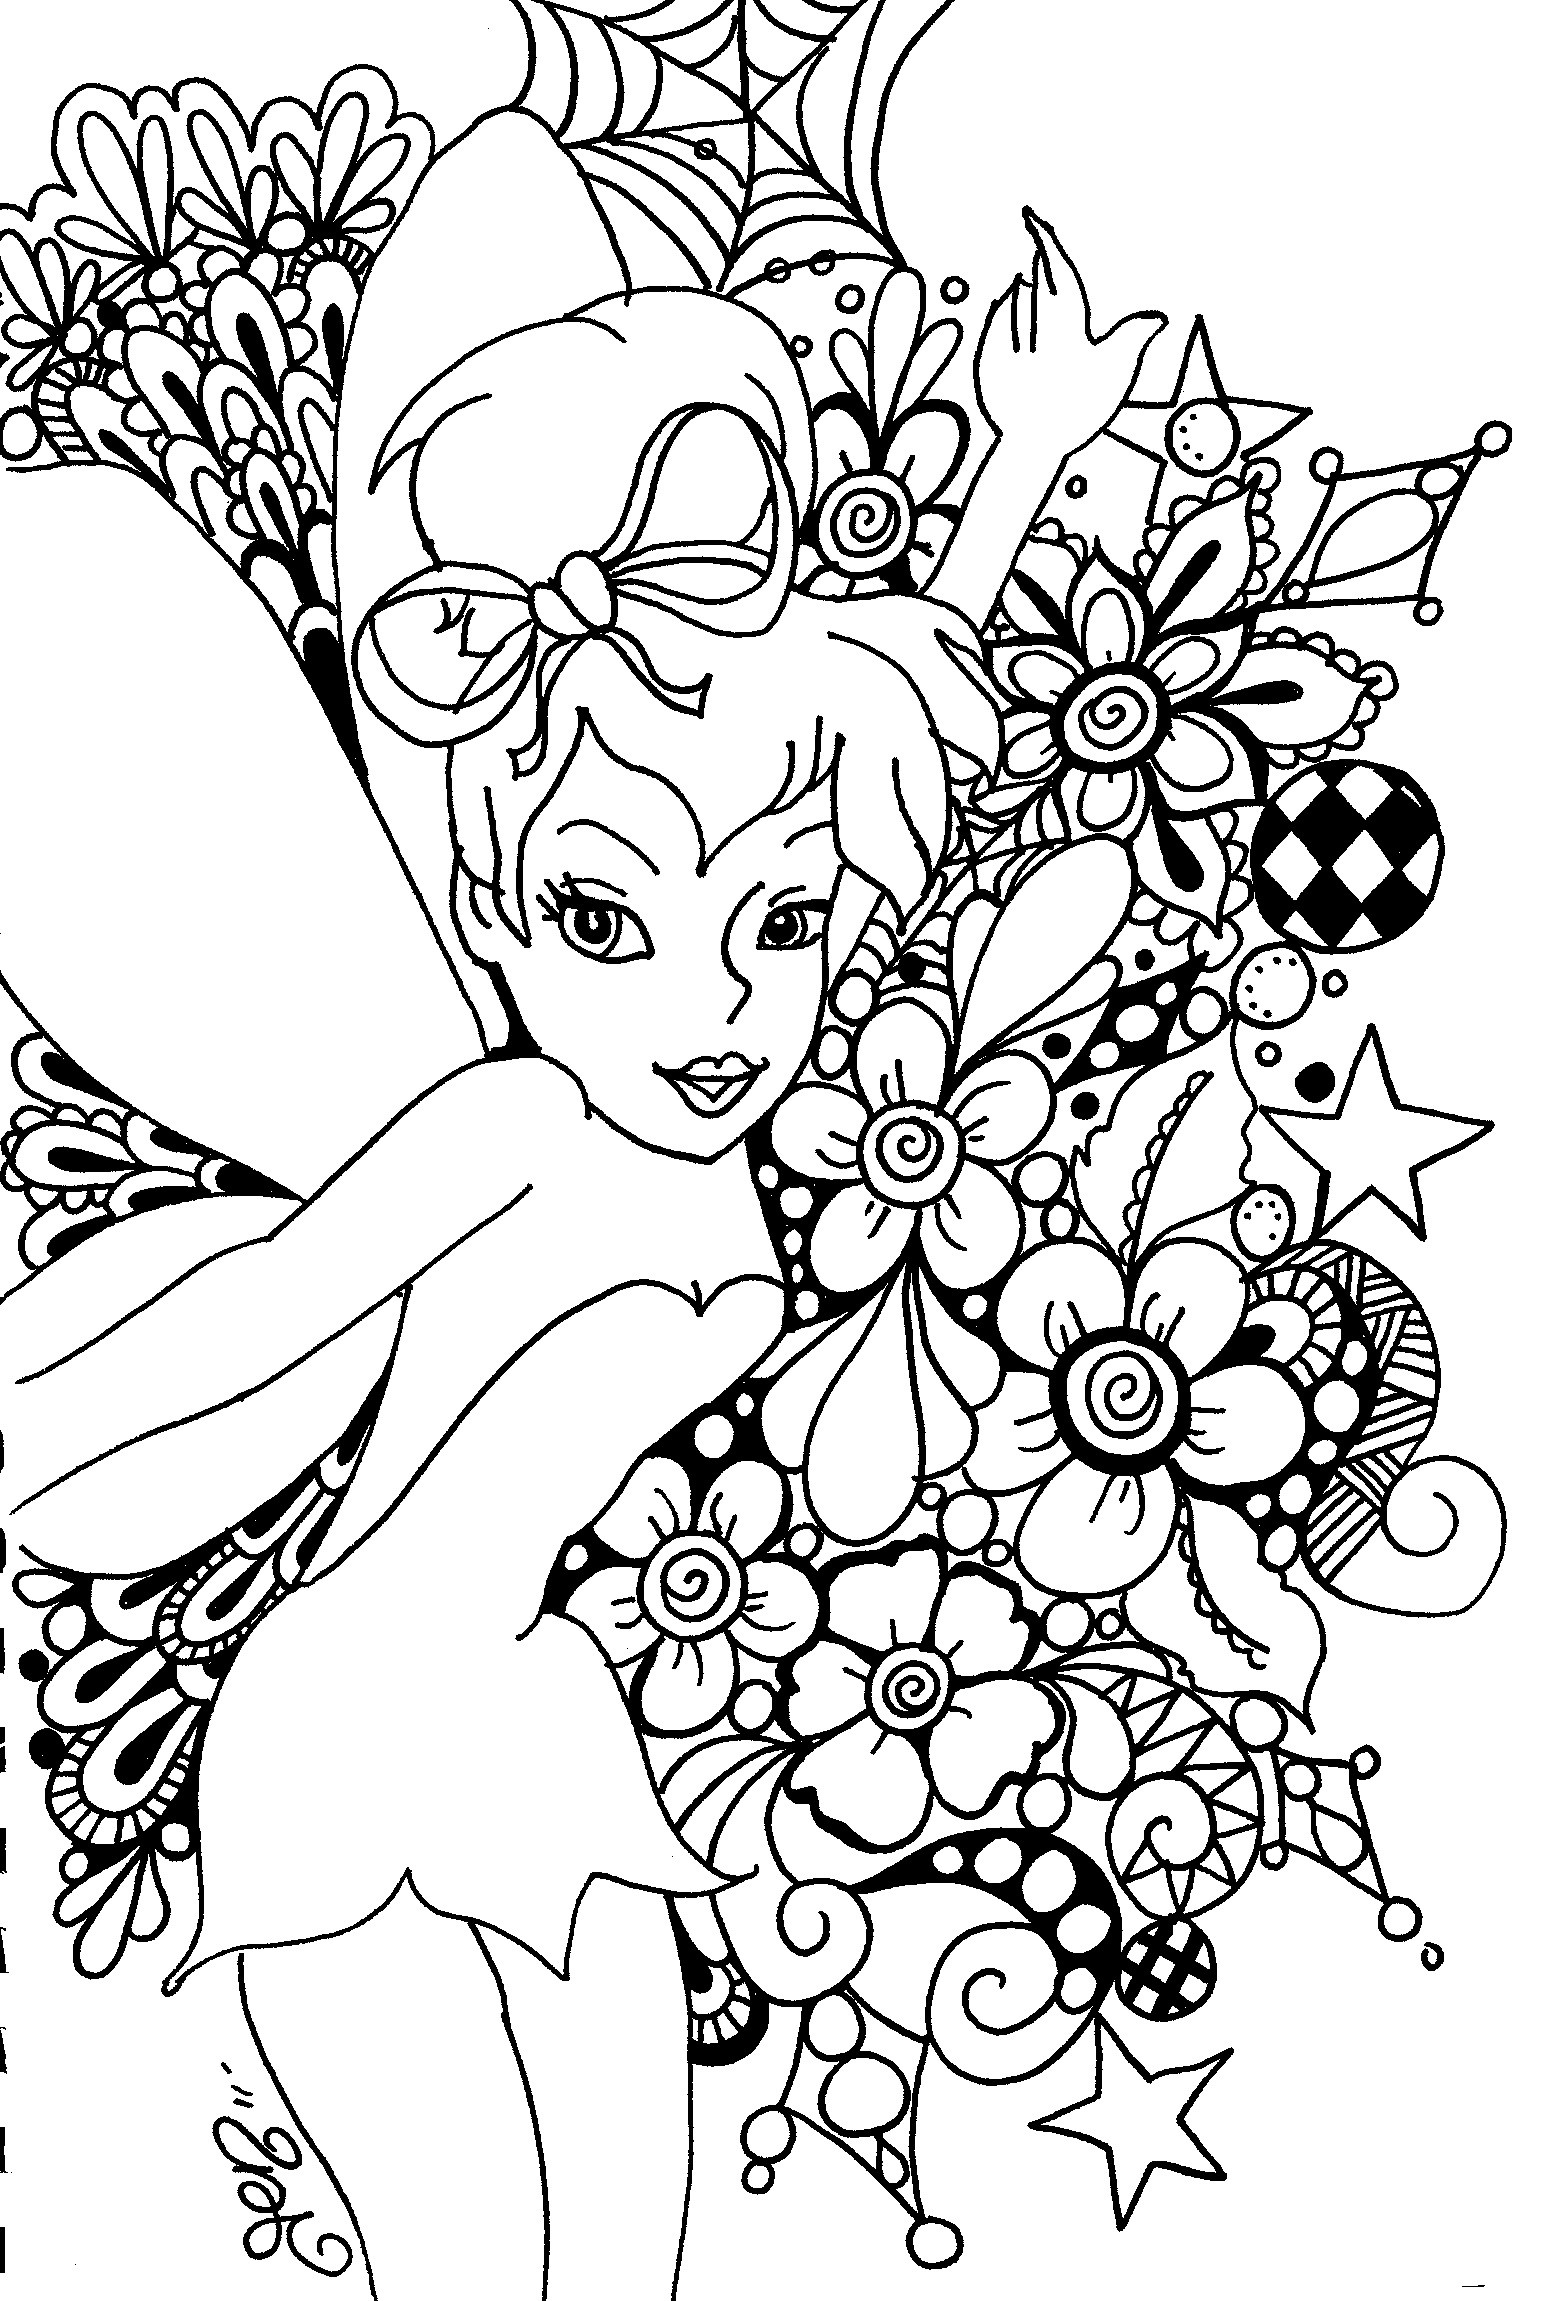 Free Printable Tinkerbell Coloring Pages For Kids - Tinkerbell Coloring Pages Printable Free